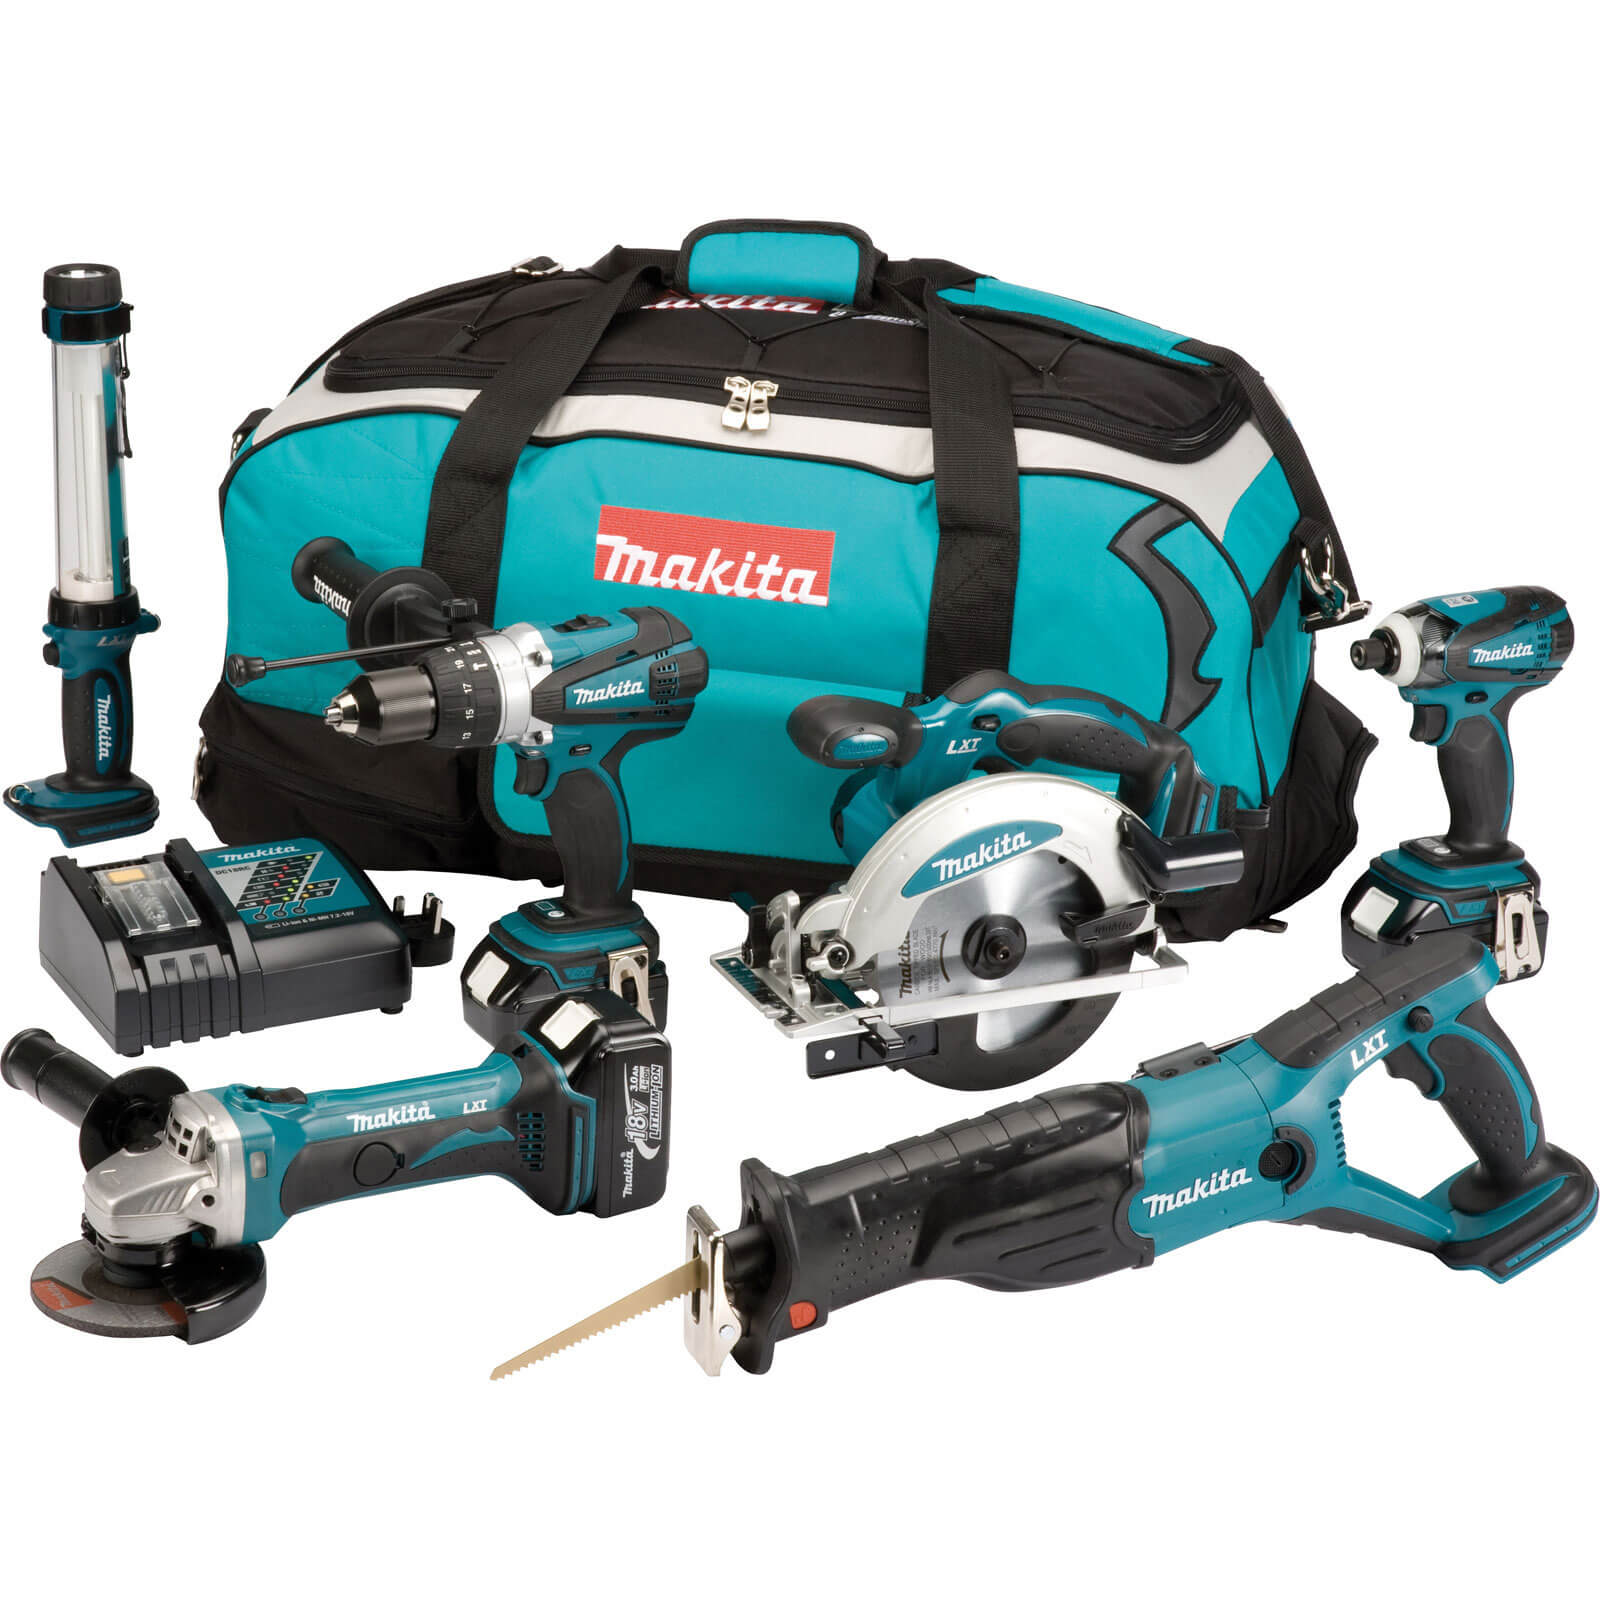 Image of Makita DLX6000PM 18v Cordless LXT 6 Piece Kit 3 x 4ah Li-ion Charger Bag